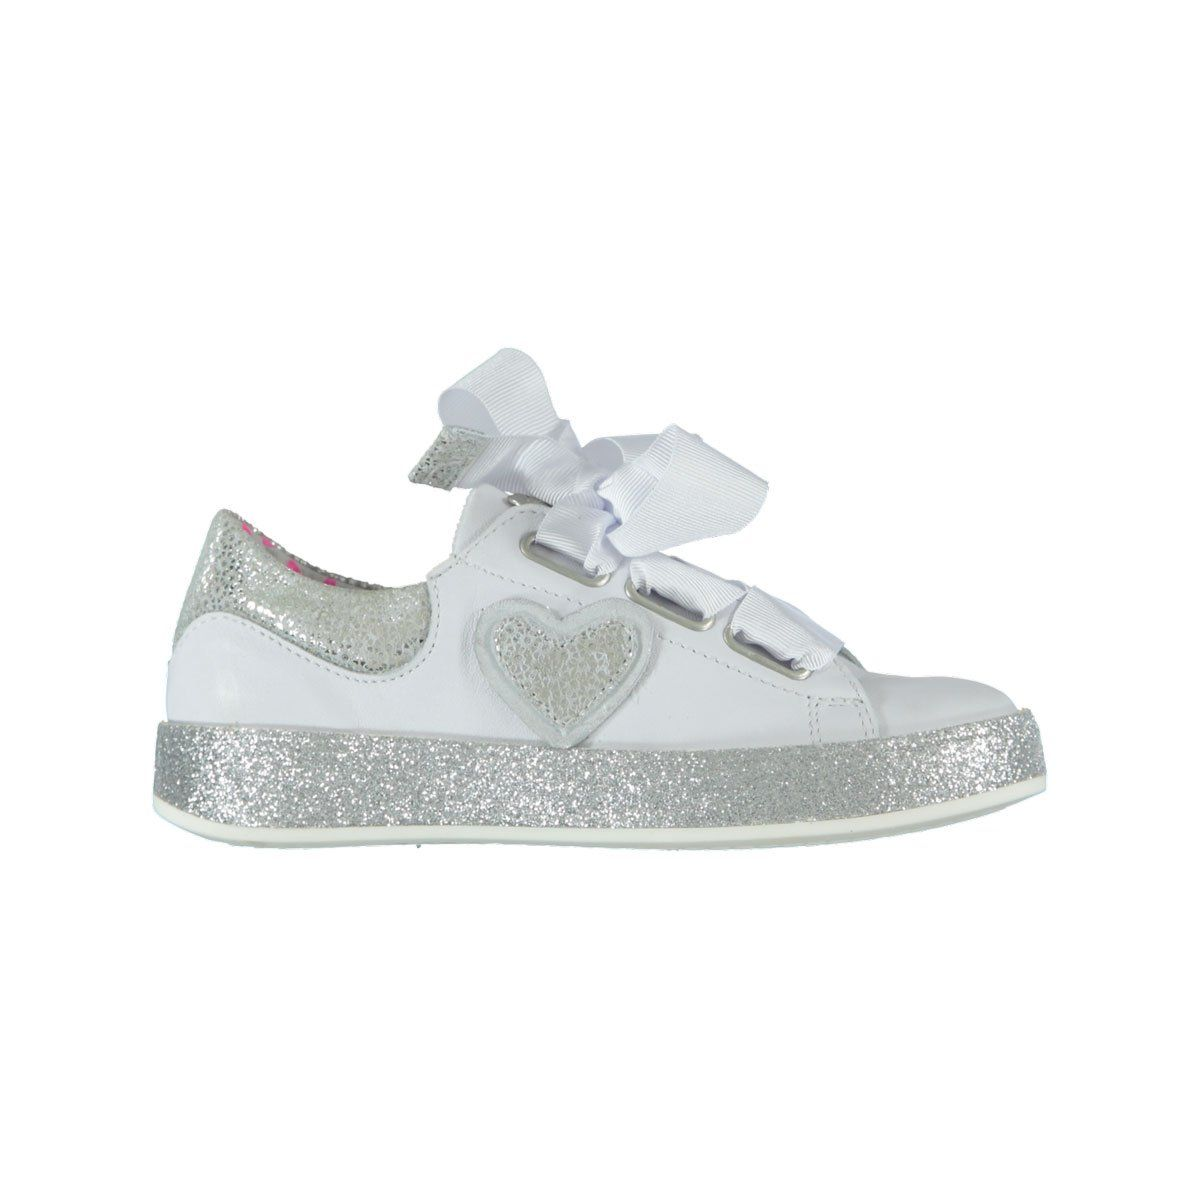 ed8930c3010 Mim-Pi summer 2018 footwear collection! #summer #kids #beautiful #cute  #love #sweet #kidshoes #footwear #sneakers #white #wit #sparkly #silver # heart